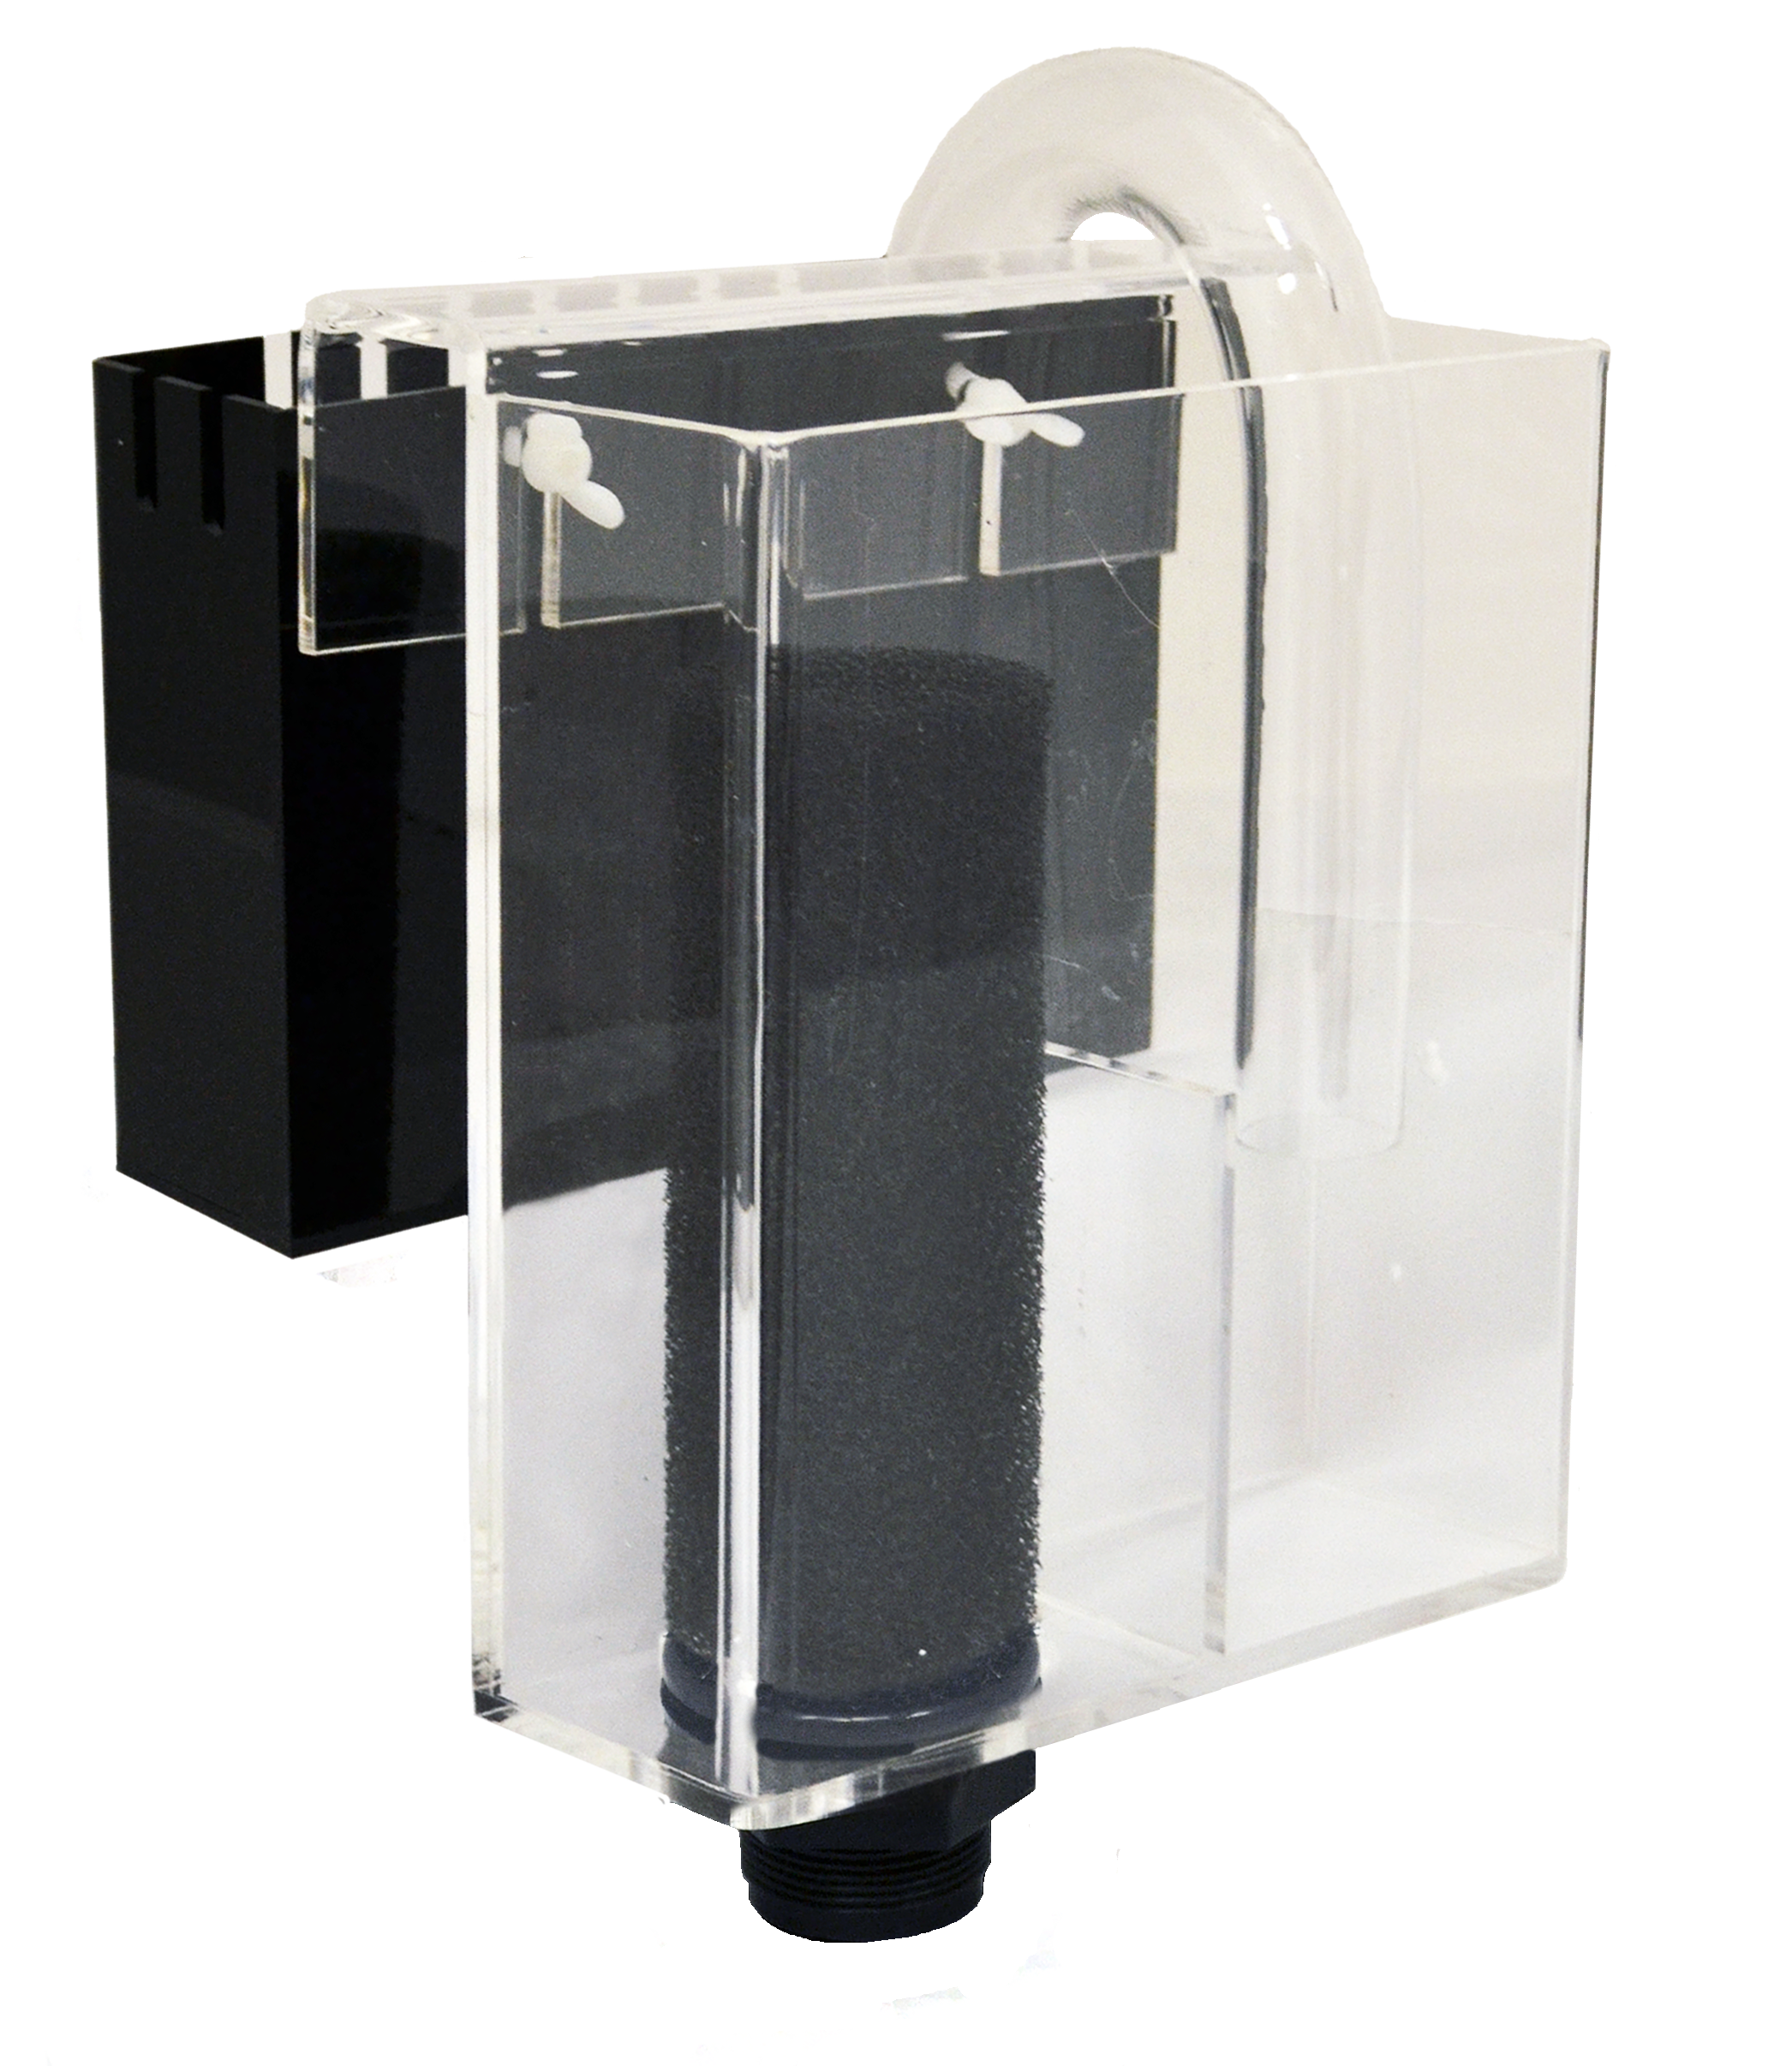 "300 Overflow System     Optimal Tank Size: 30-75 gallons    SKU: AM87001    UPC#: 7-49729-87001-2    Product Size: 6x3x10""    Package Size: 7.75x7.25x10.25""    Package Weight: 3.48lbs.    Master Carton Size: 22.25x16.5x21.5""    Master Carton Weight: 41.8lbs.    Case Pack: 12pcs."